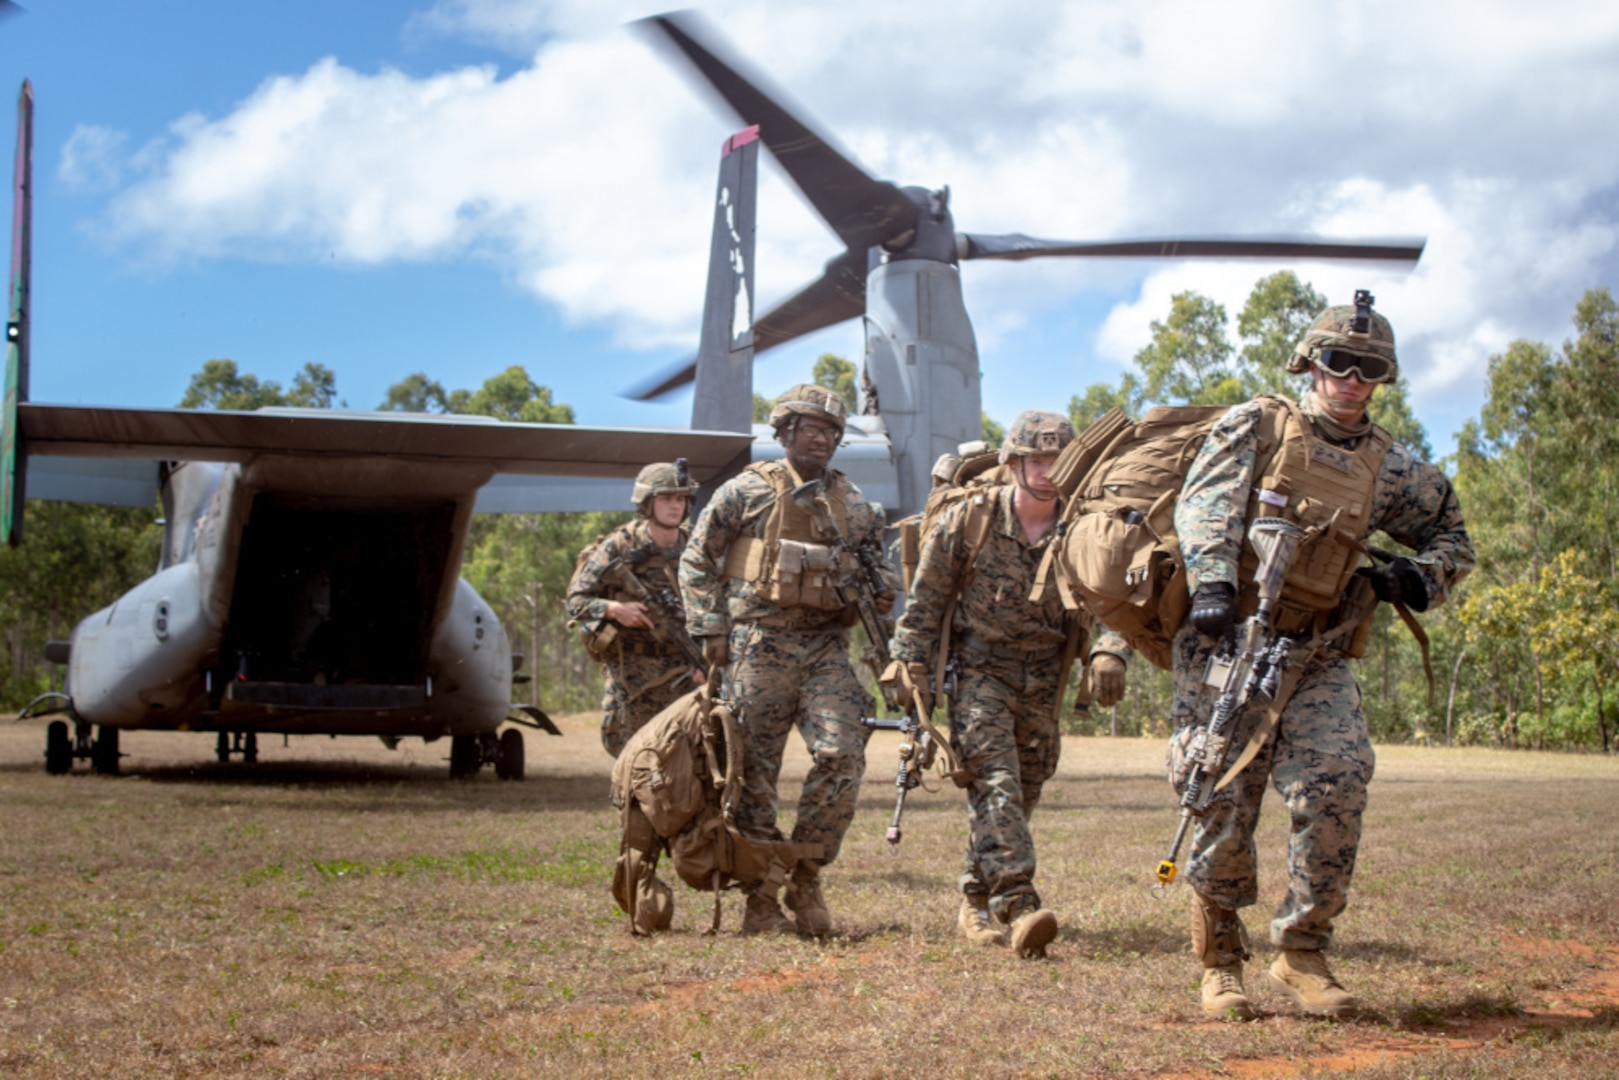 U.S. Marines in Australia complete embassy reinforcement and noncombatant evacuation operations exercise